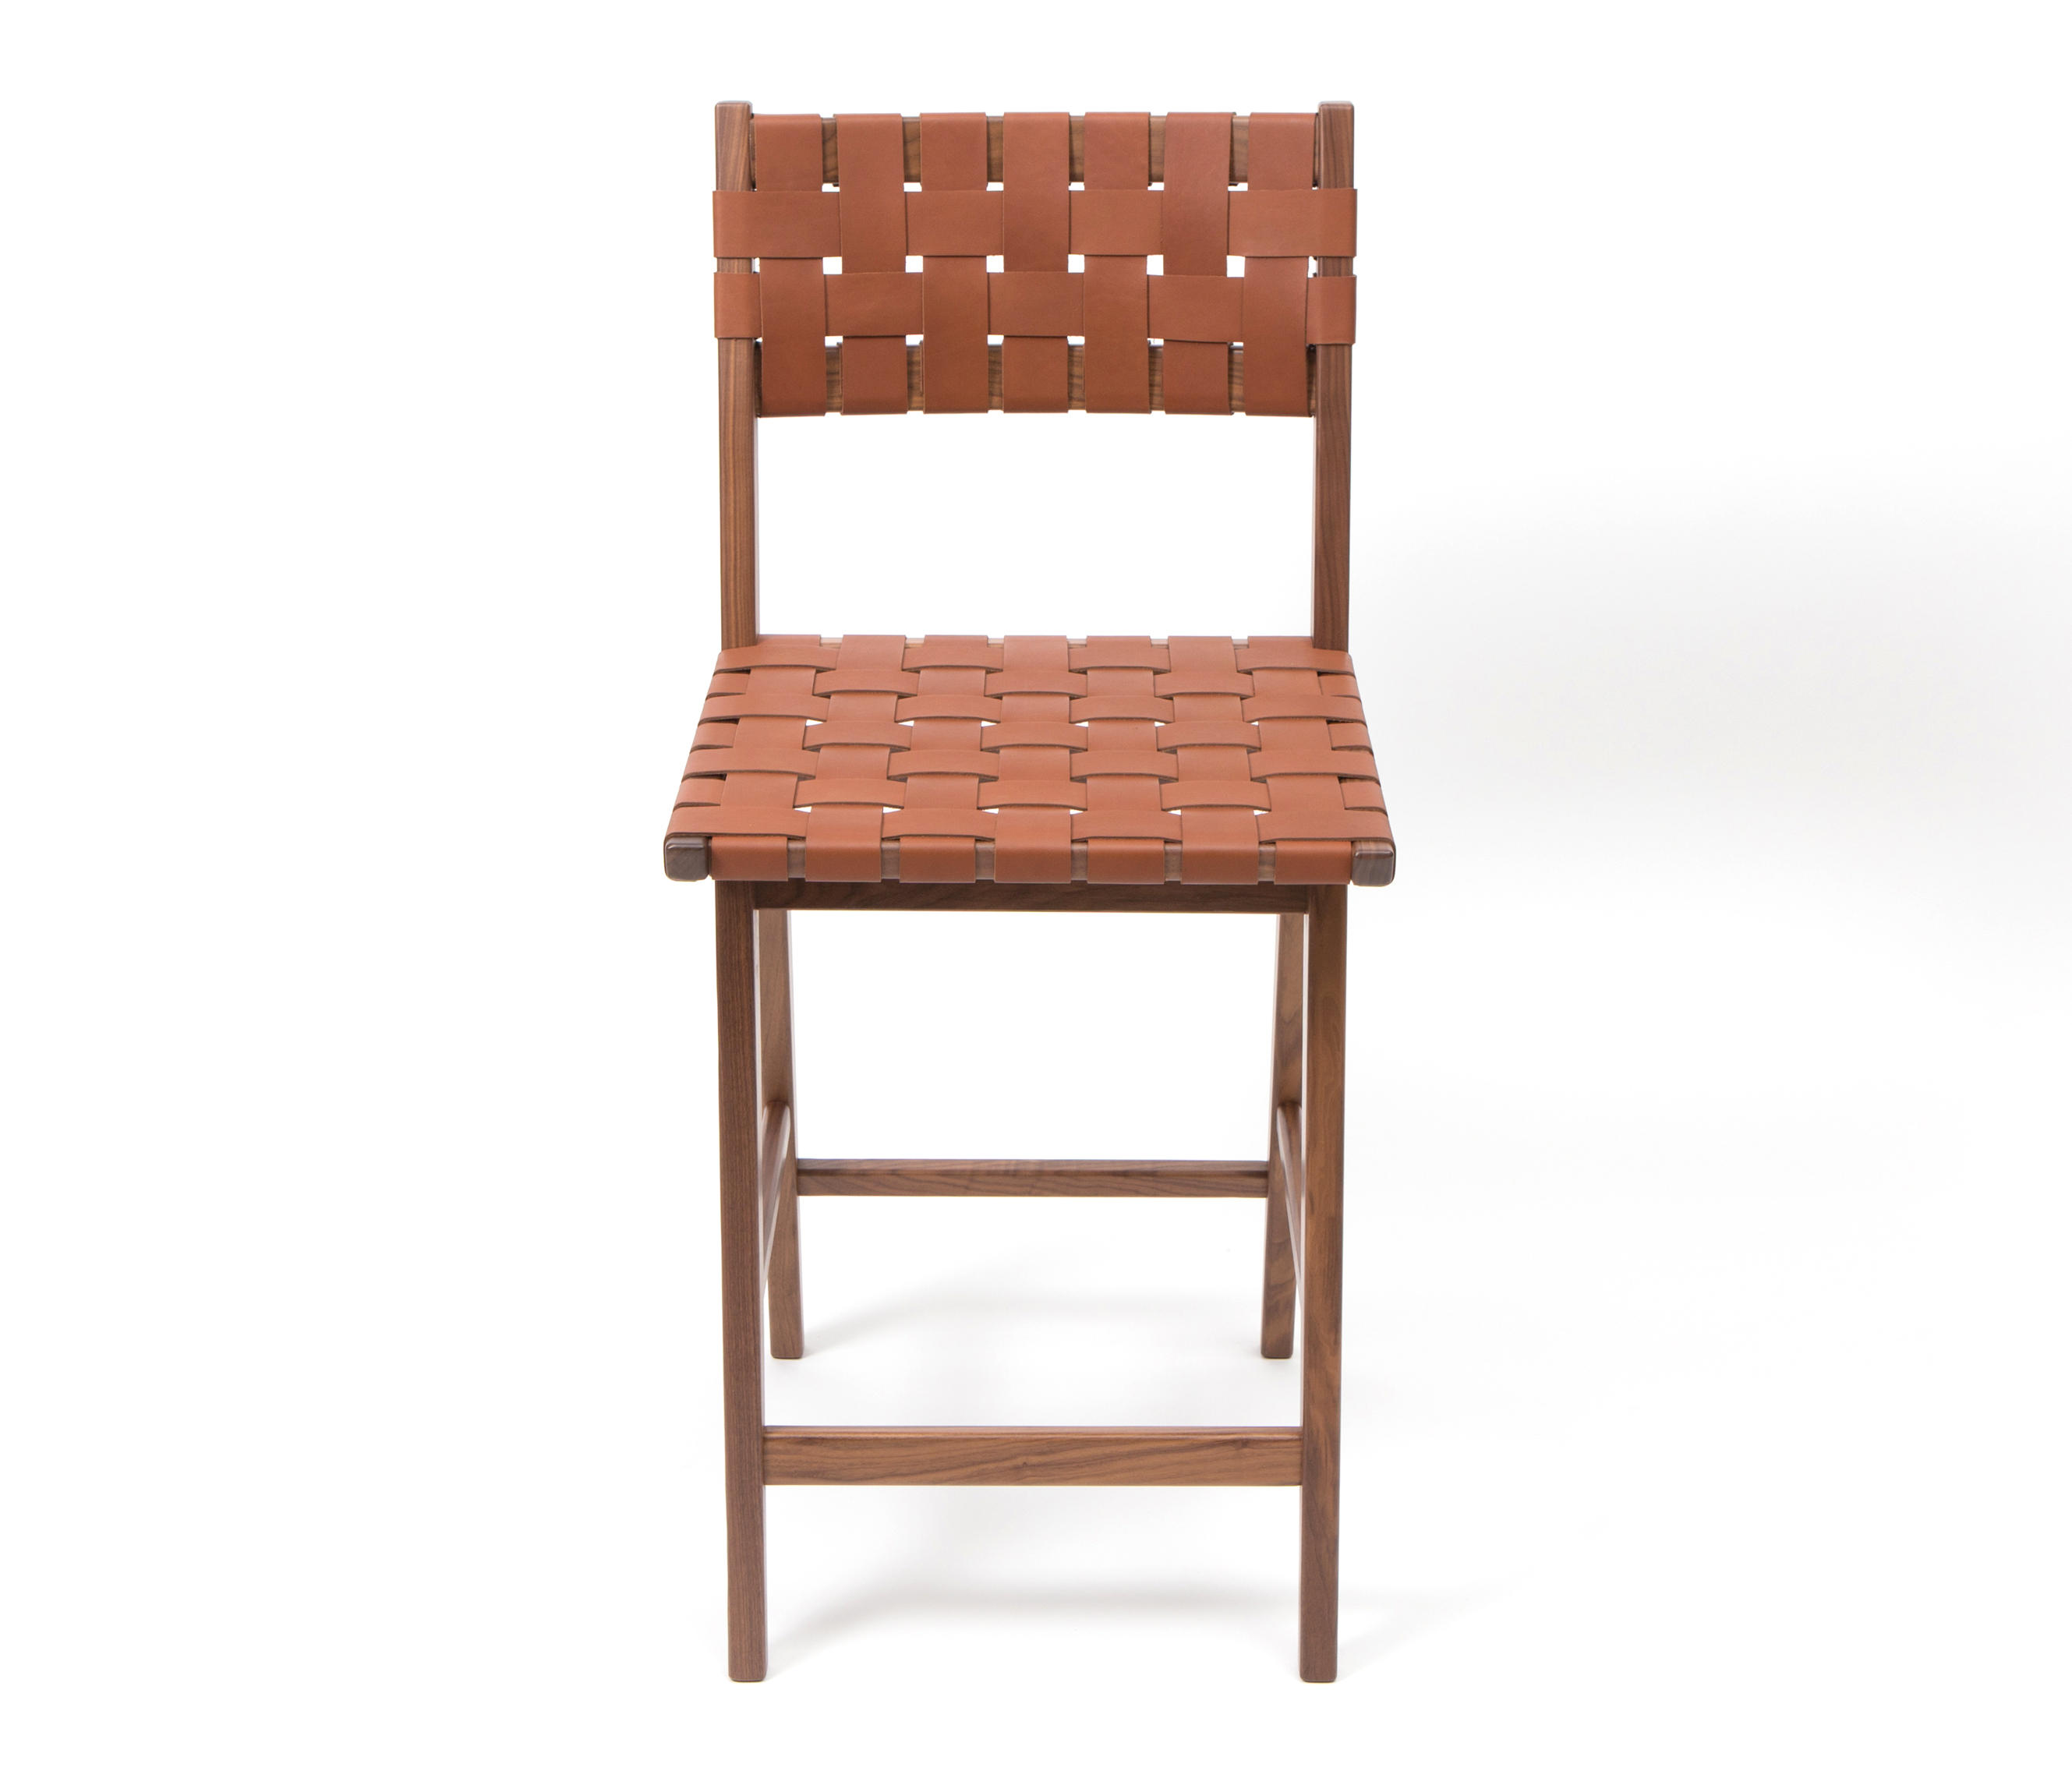 Woven Leather Backed Stool Bar Stools From Smilow Design